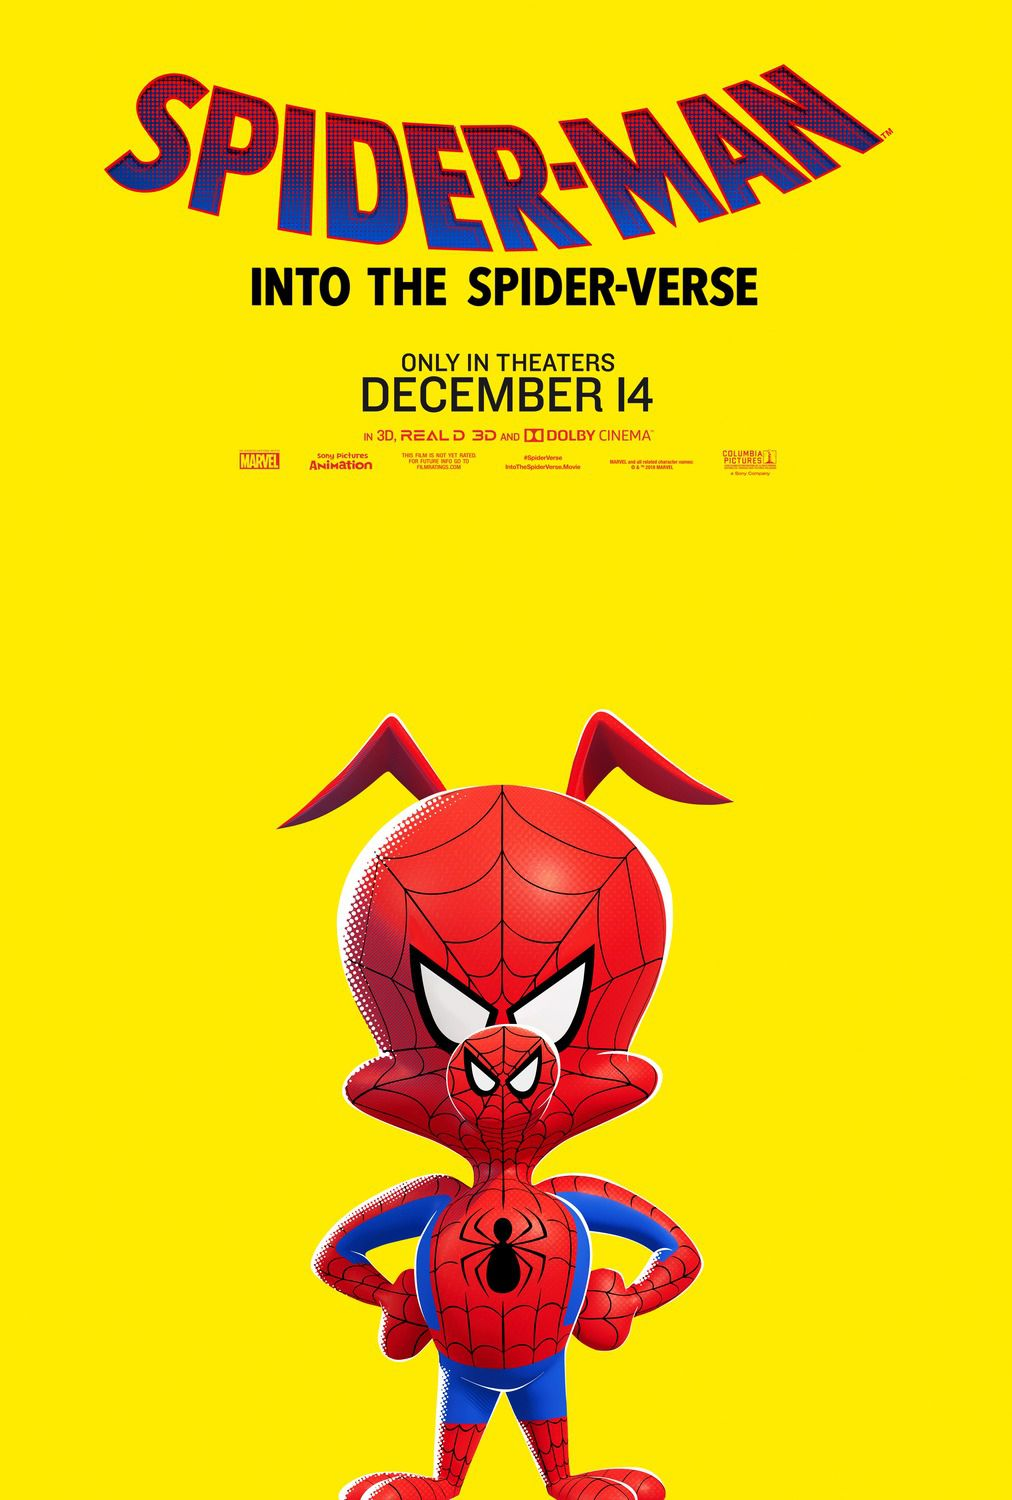 SpiderMan into the Spider Verse